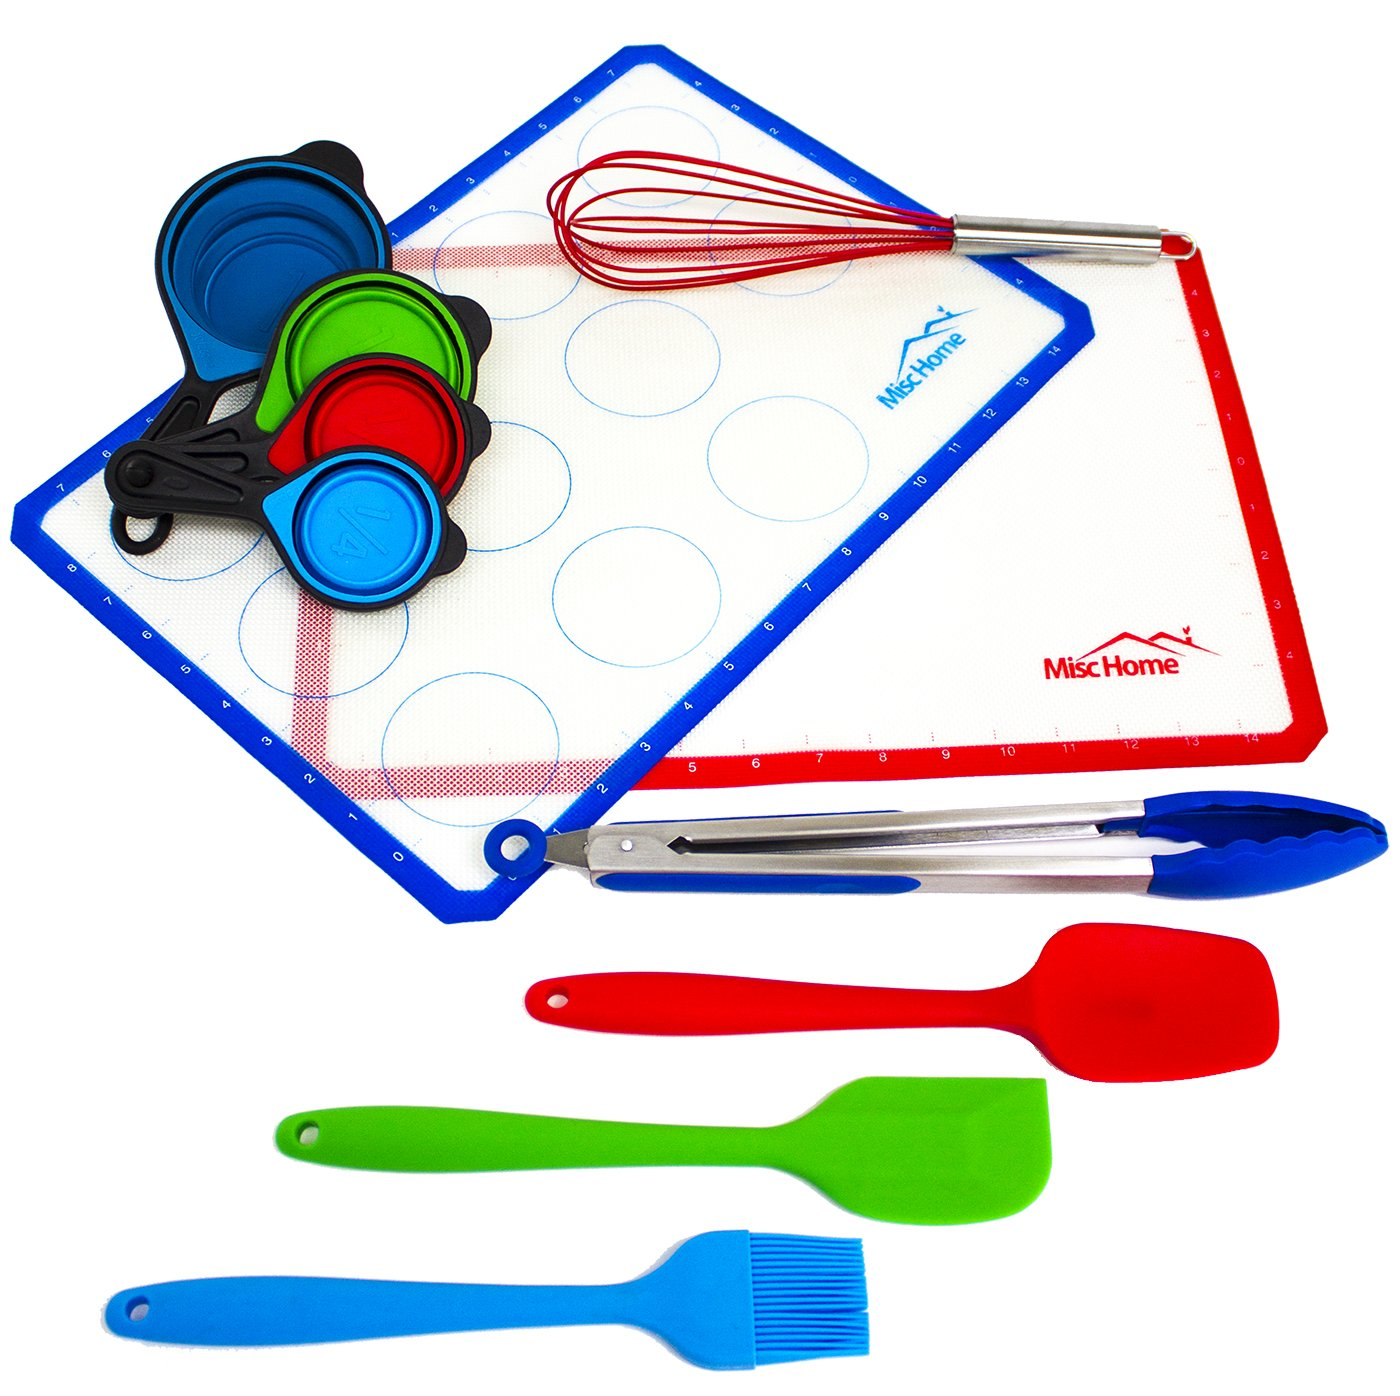 [11 Piece Set] Silicone Baking Mat Set with 2 Large Baking Sheets, Spatula, Brush, Whisk Measuring Cups, and Tongs All BPA-Free MIsc Home